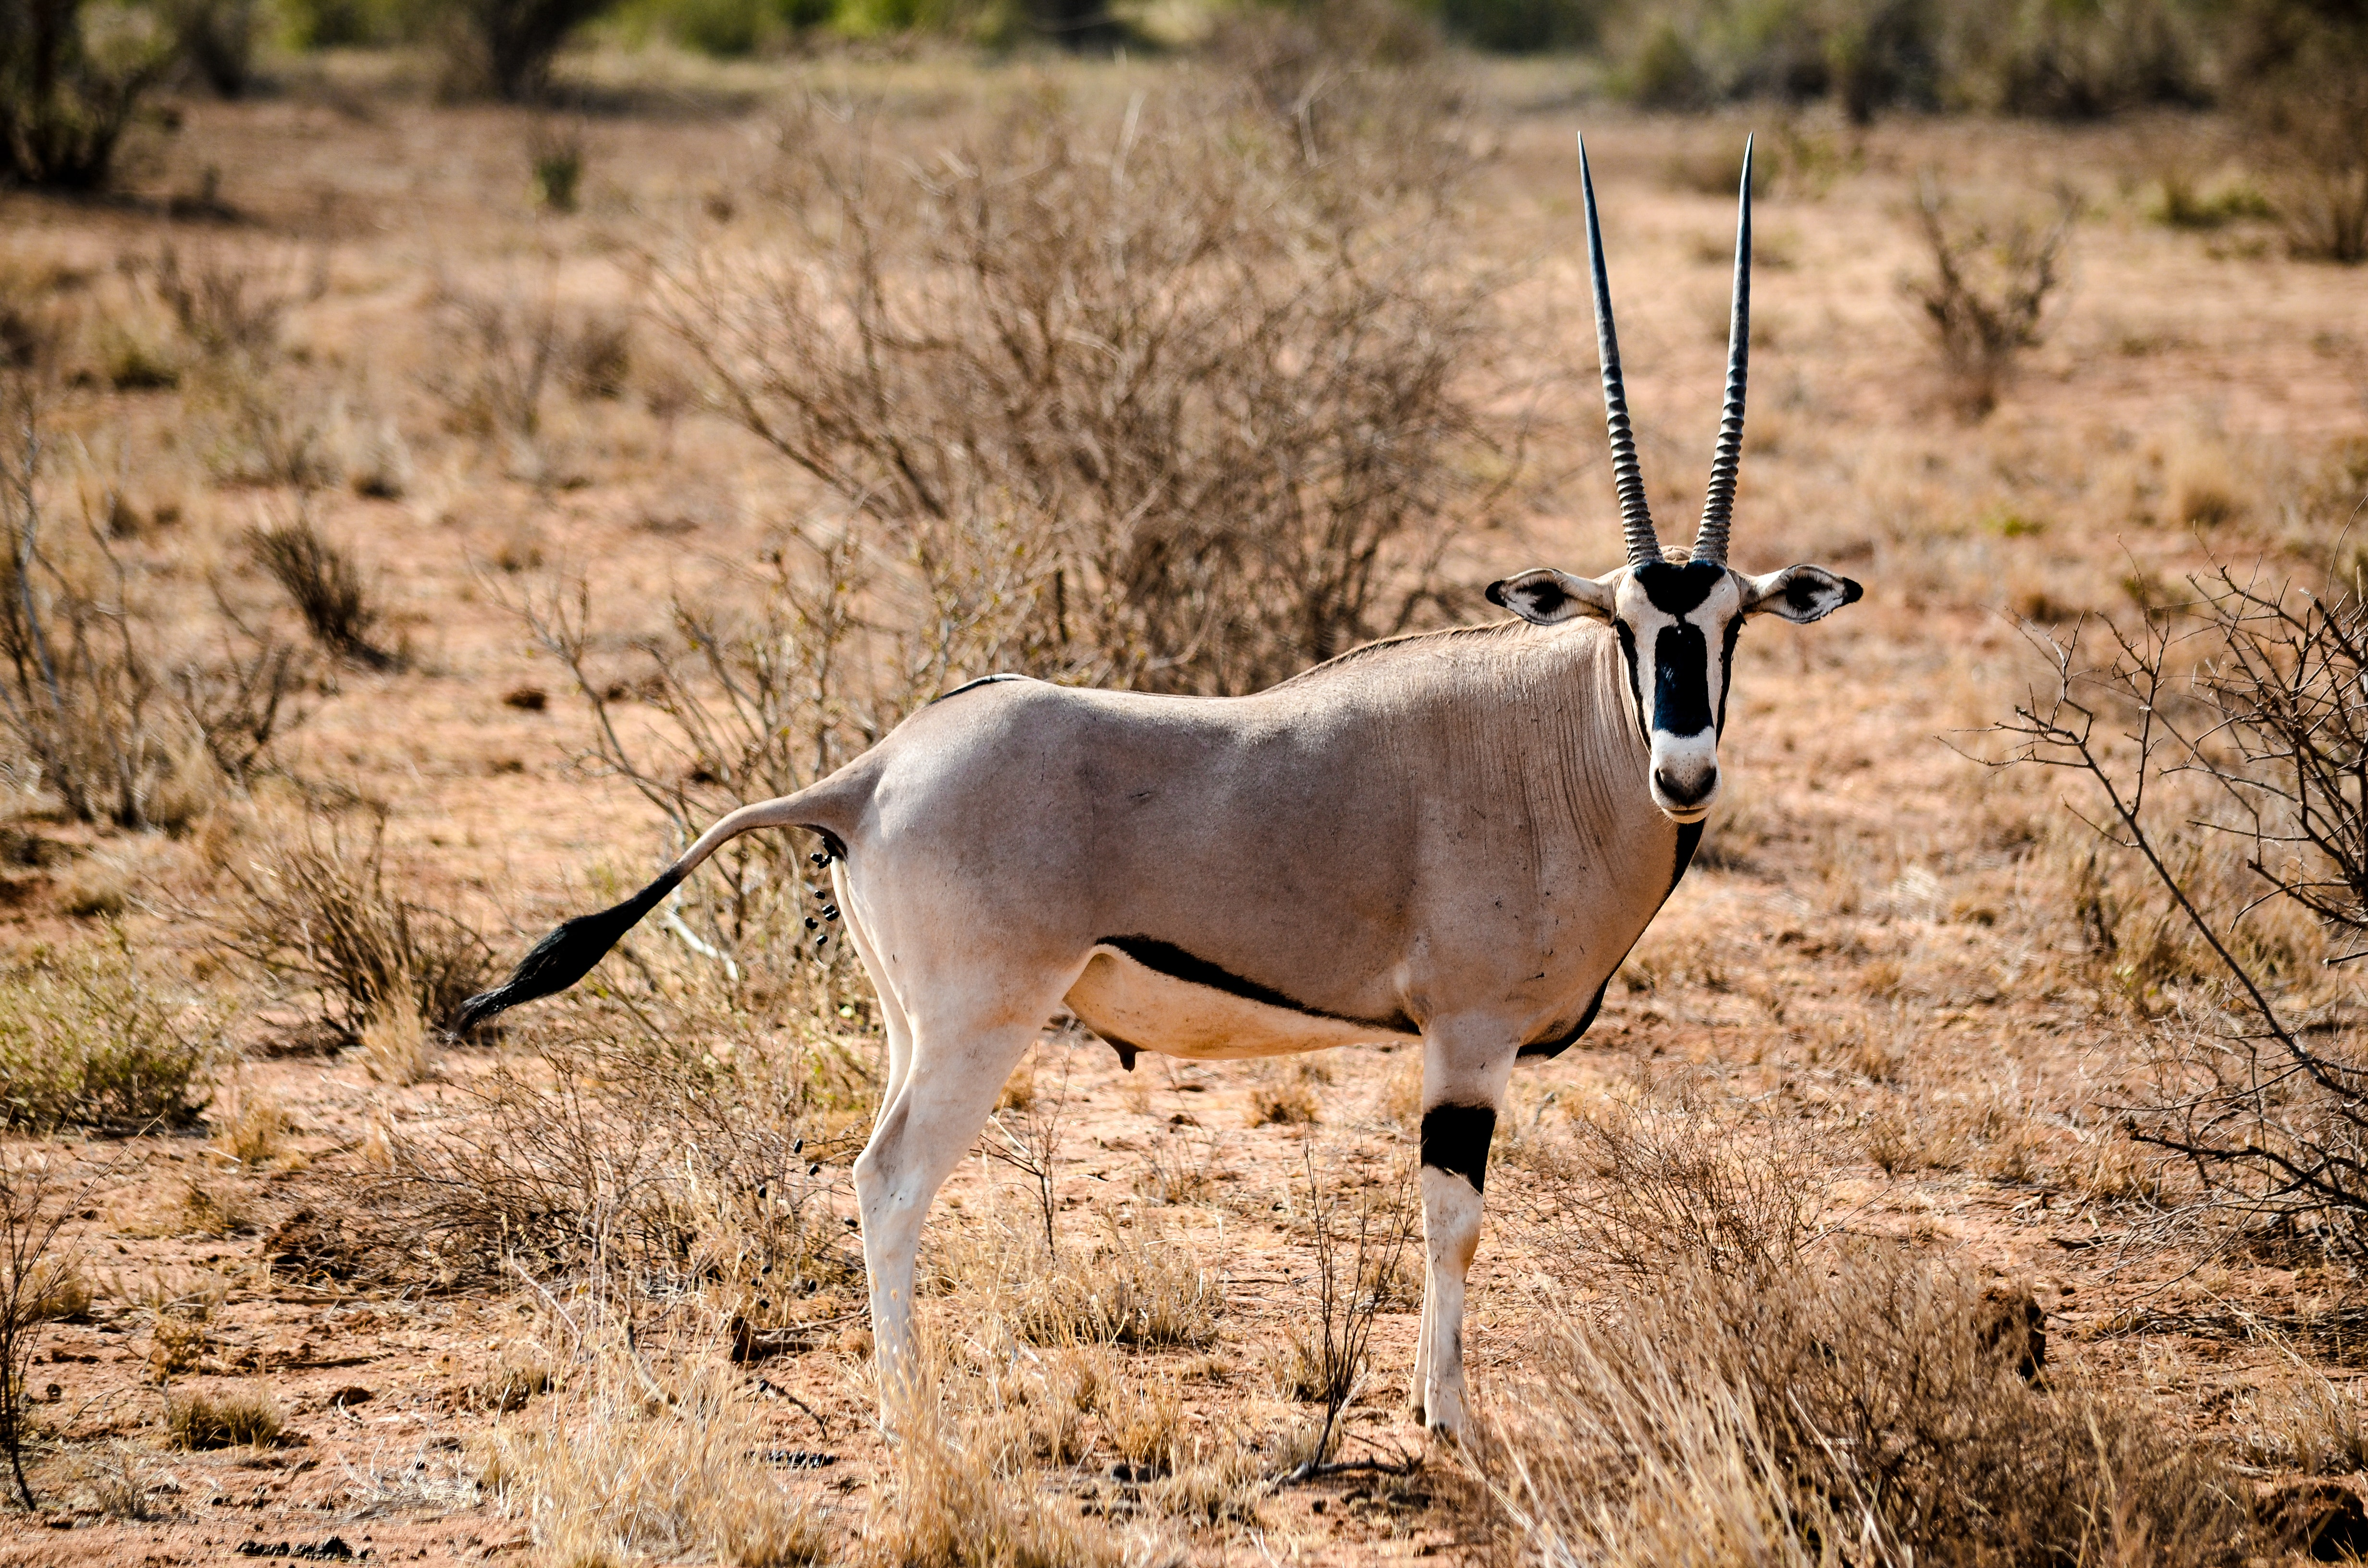 Animal on Forest, Animal, Antelope, Bushes, Conservation, HQ Photo